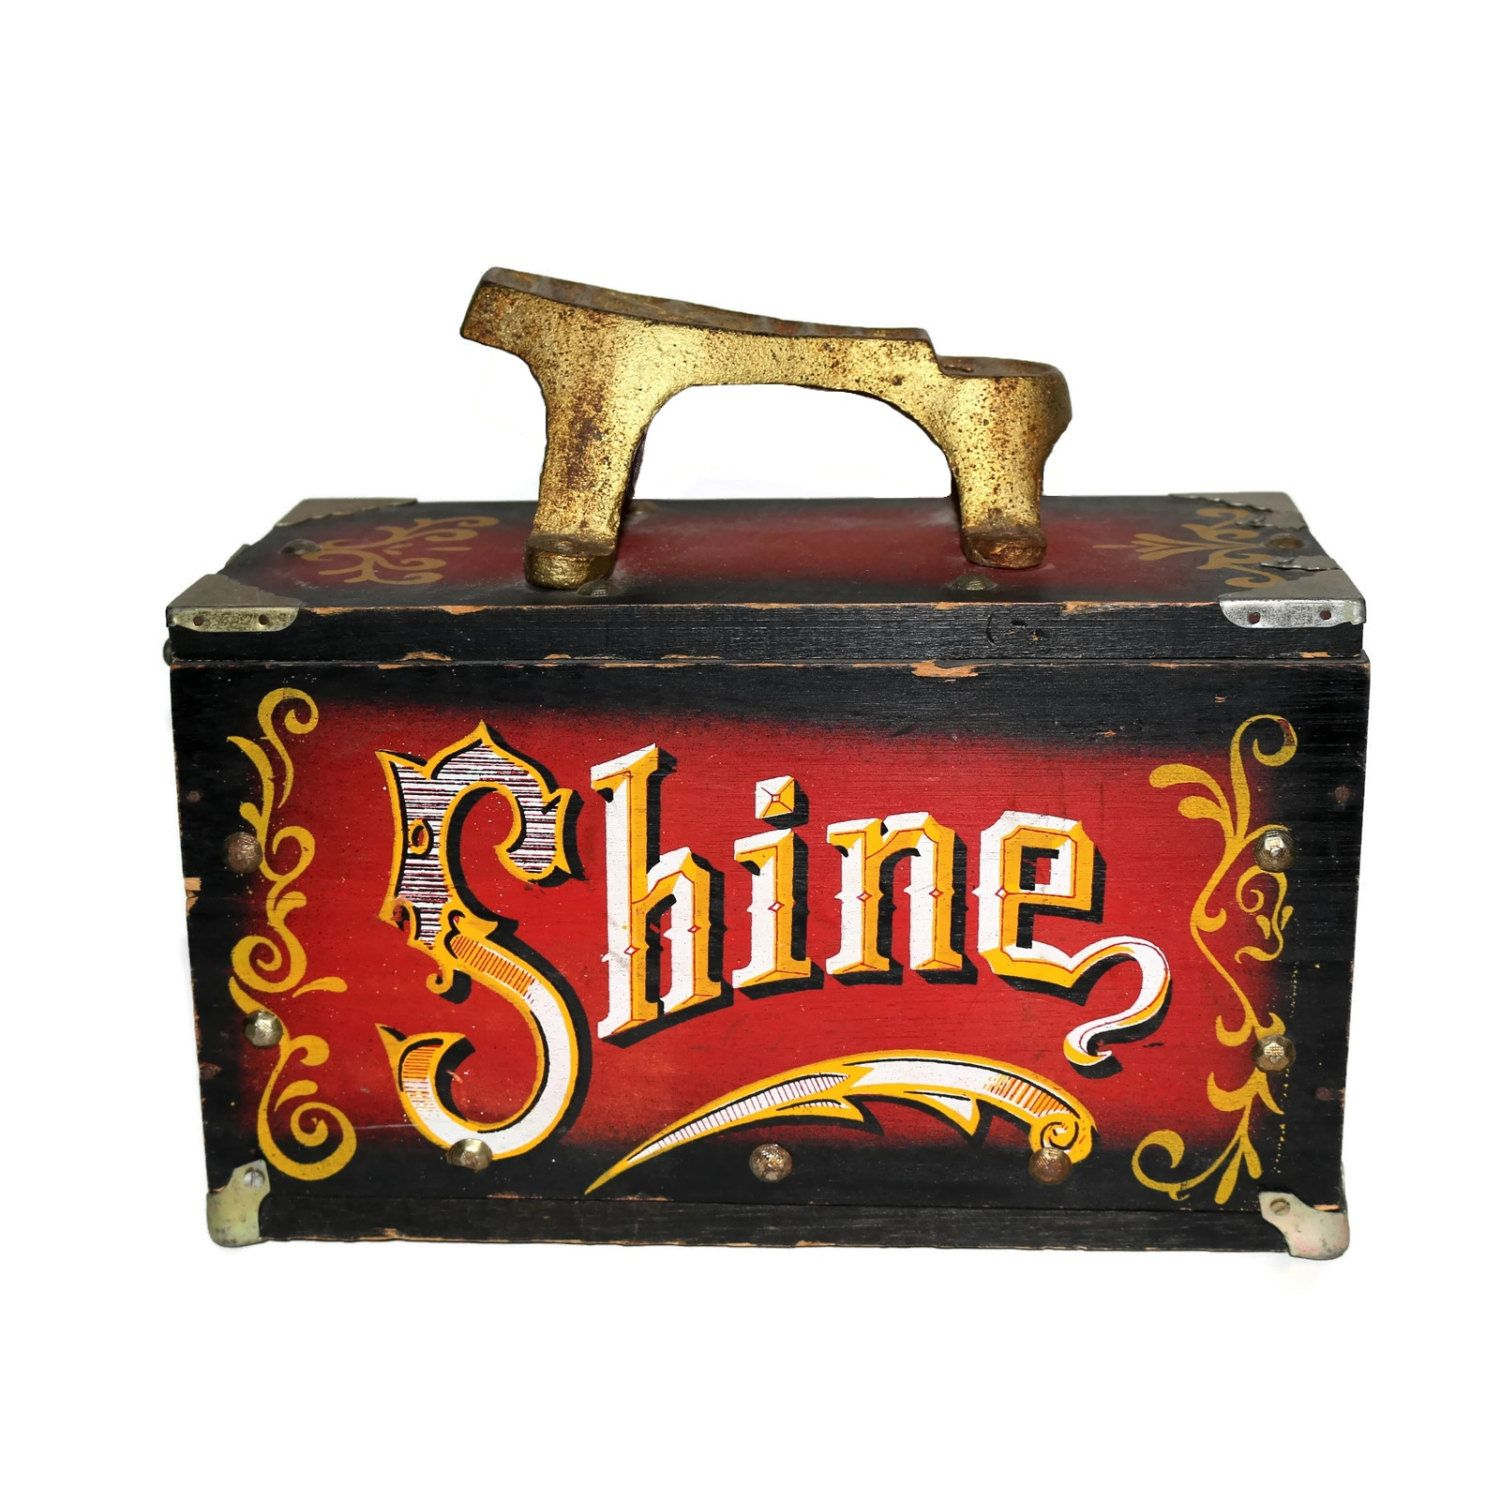 Old Fashioned Shoe Shine Box with Brass Foot Rest and Decorative Nostalgic Lettering Typography